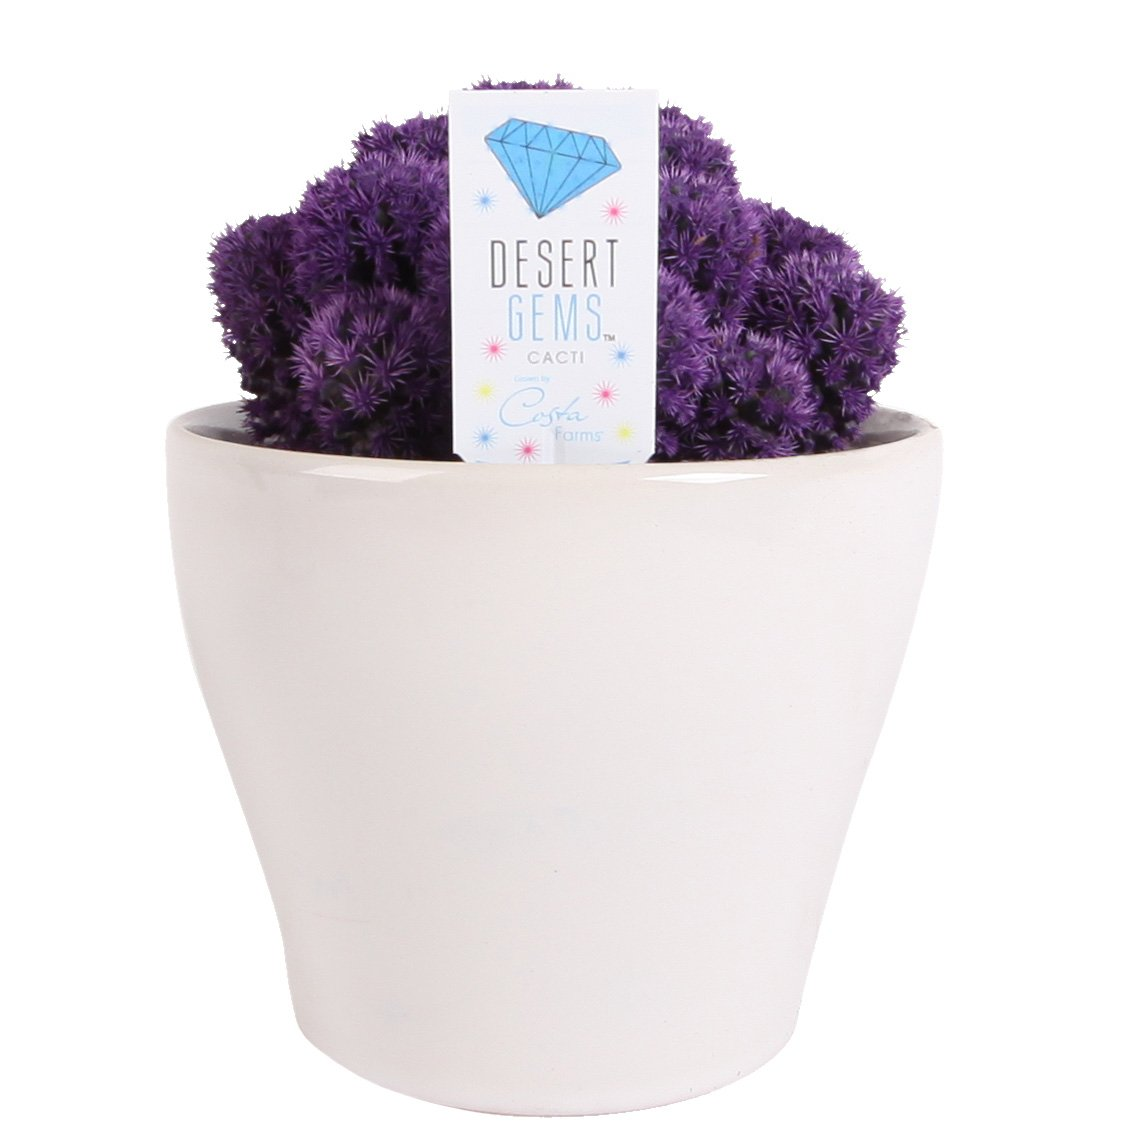 Costa Farms, Premium Live Indoor Desert Gems Purple Cacti, Tabletop Plant, White Gloss Euro Ceramic Decorator Pot, Shipped Fresh From Our Farm, Excellent Gift by Costa Farms